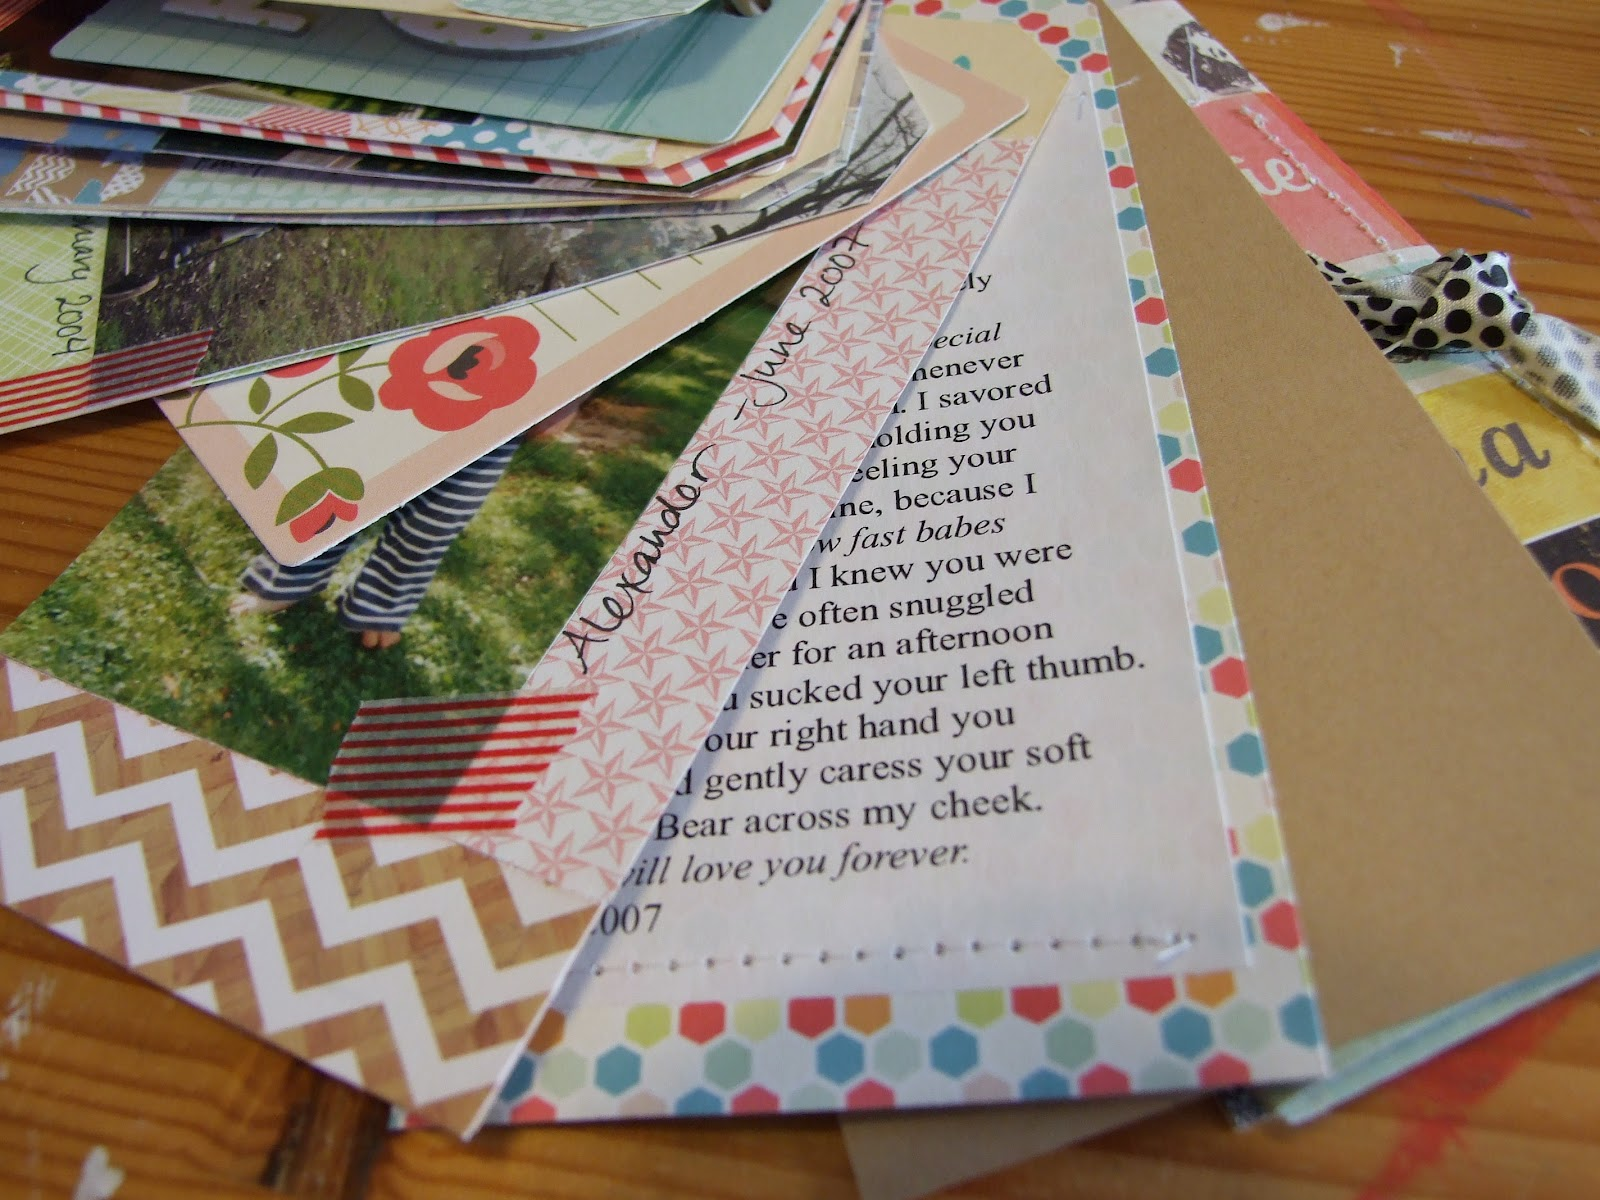 How to put scrapbook back together - Sometimes Though I Really Want To Just Look Back At The Past And Scrapbook About It